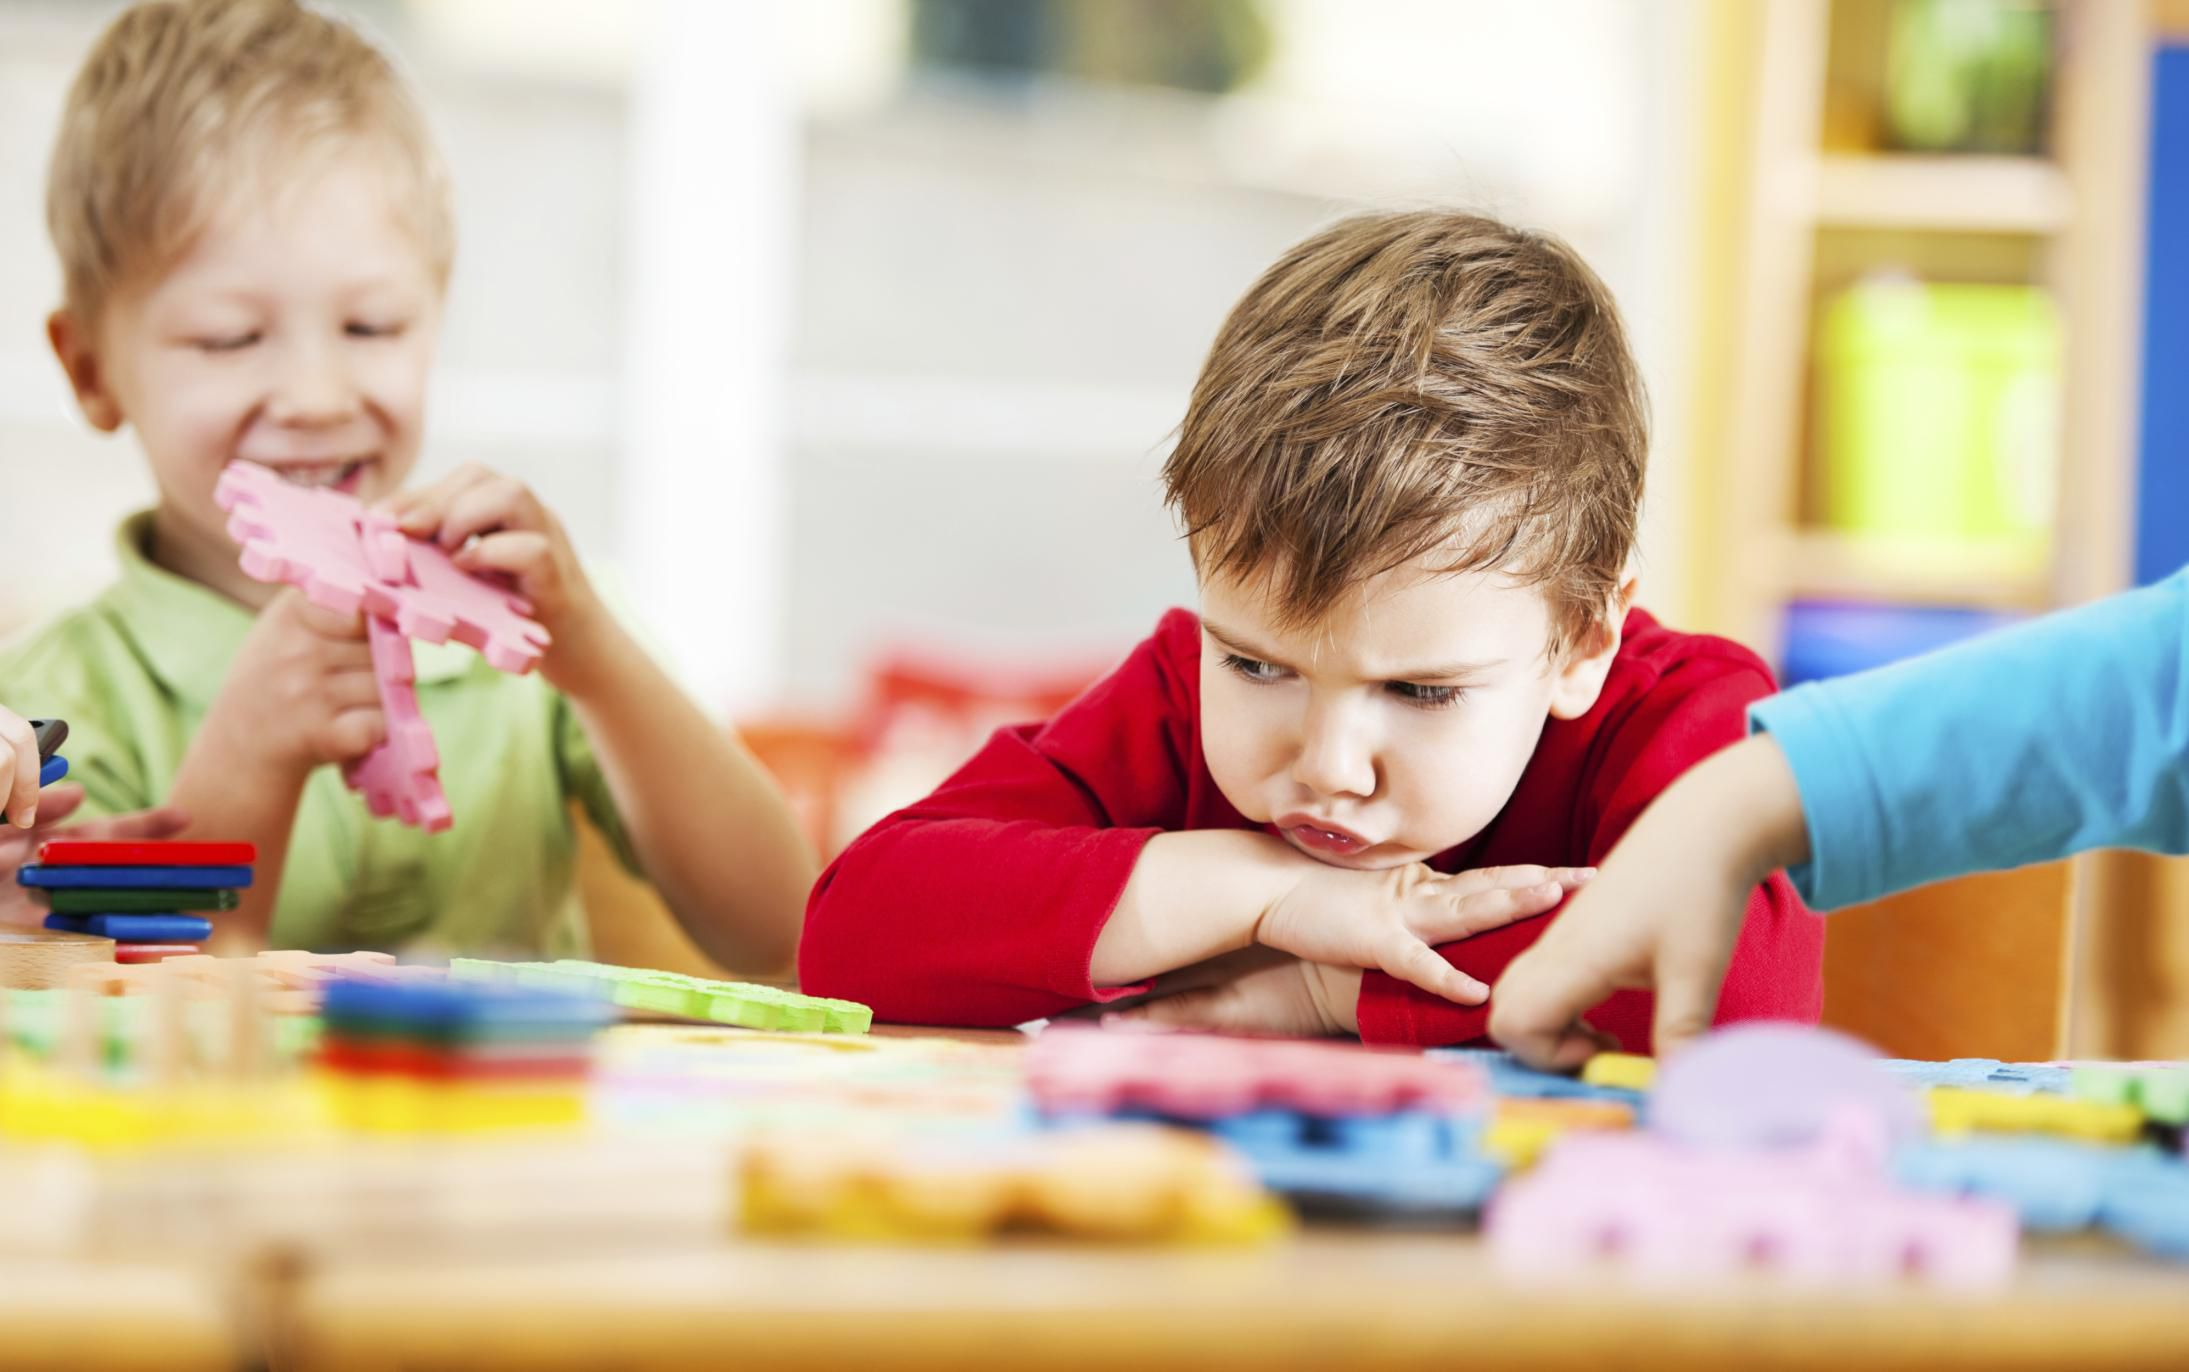 What is the Best Way to Deal with Temper Tantrums?